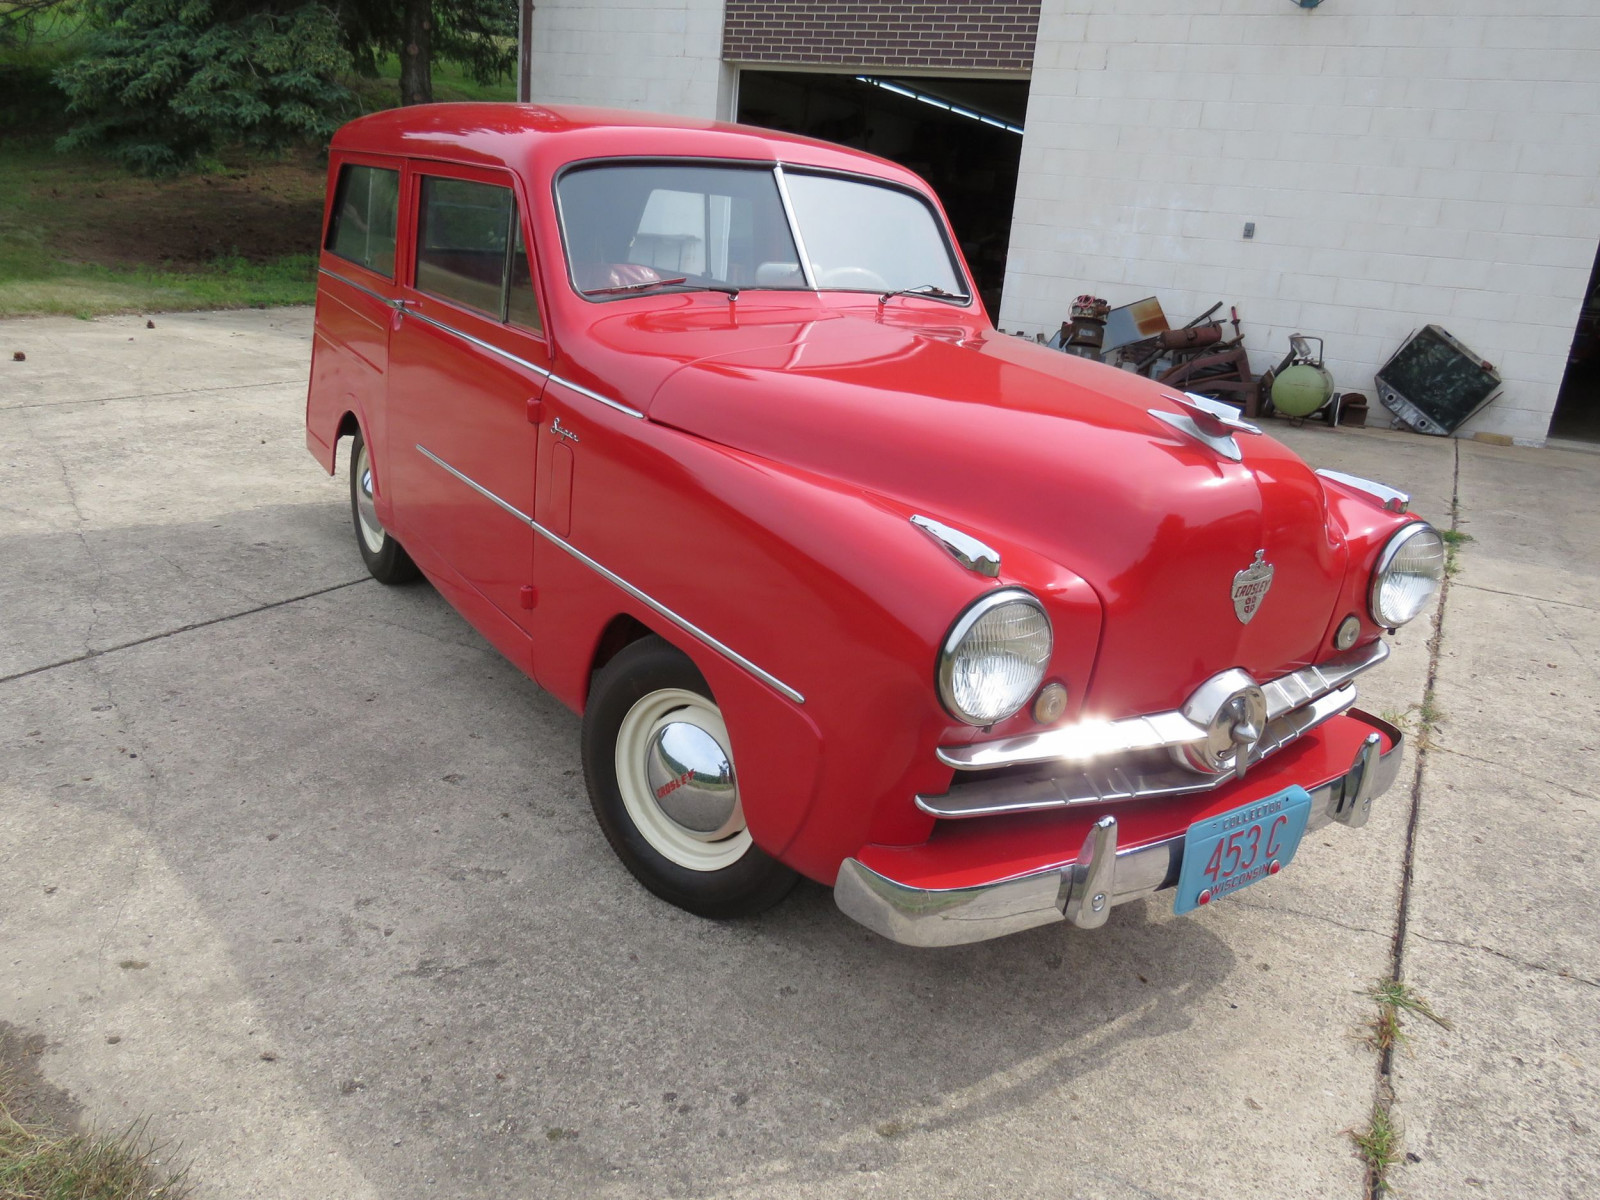 1951 Crosley Super 2dr Station wagon - Image 3